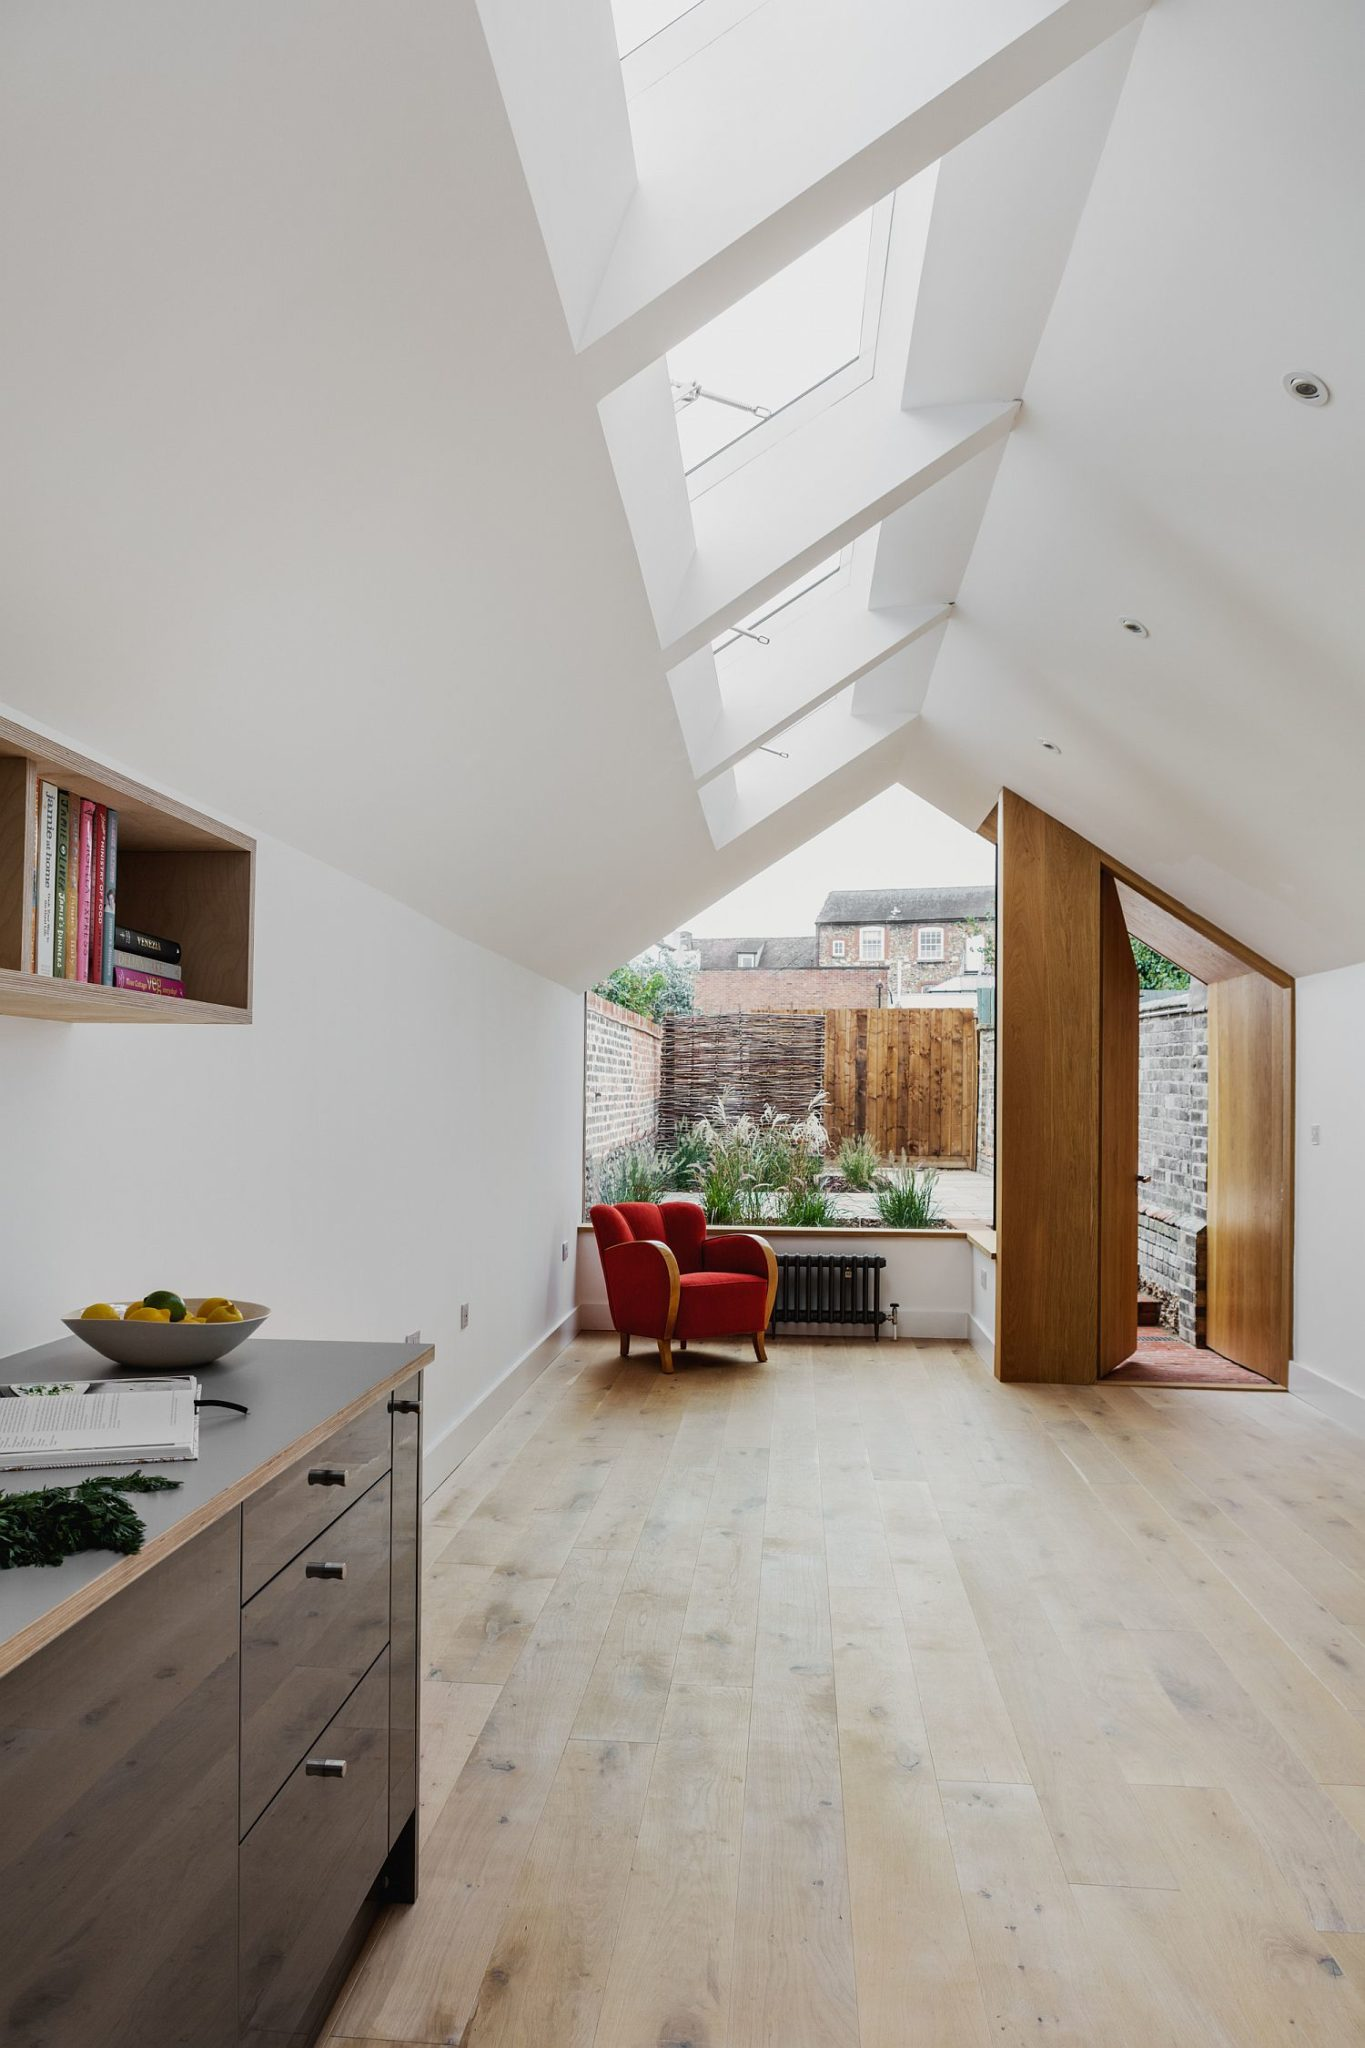 Four skylights and glass walls bring plenty of light indoors